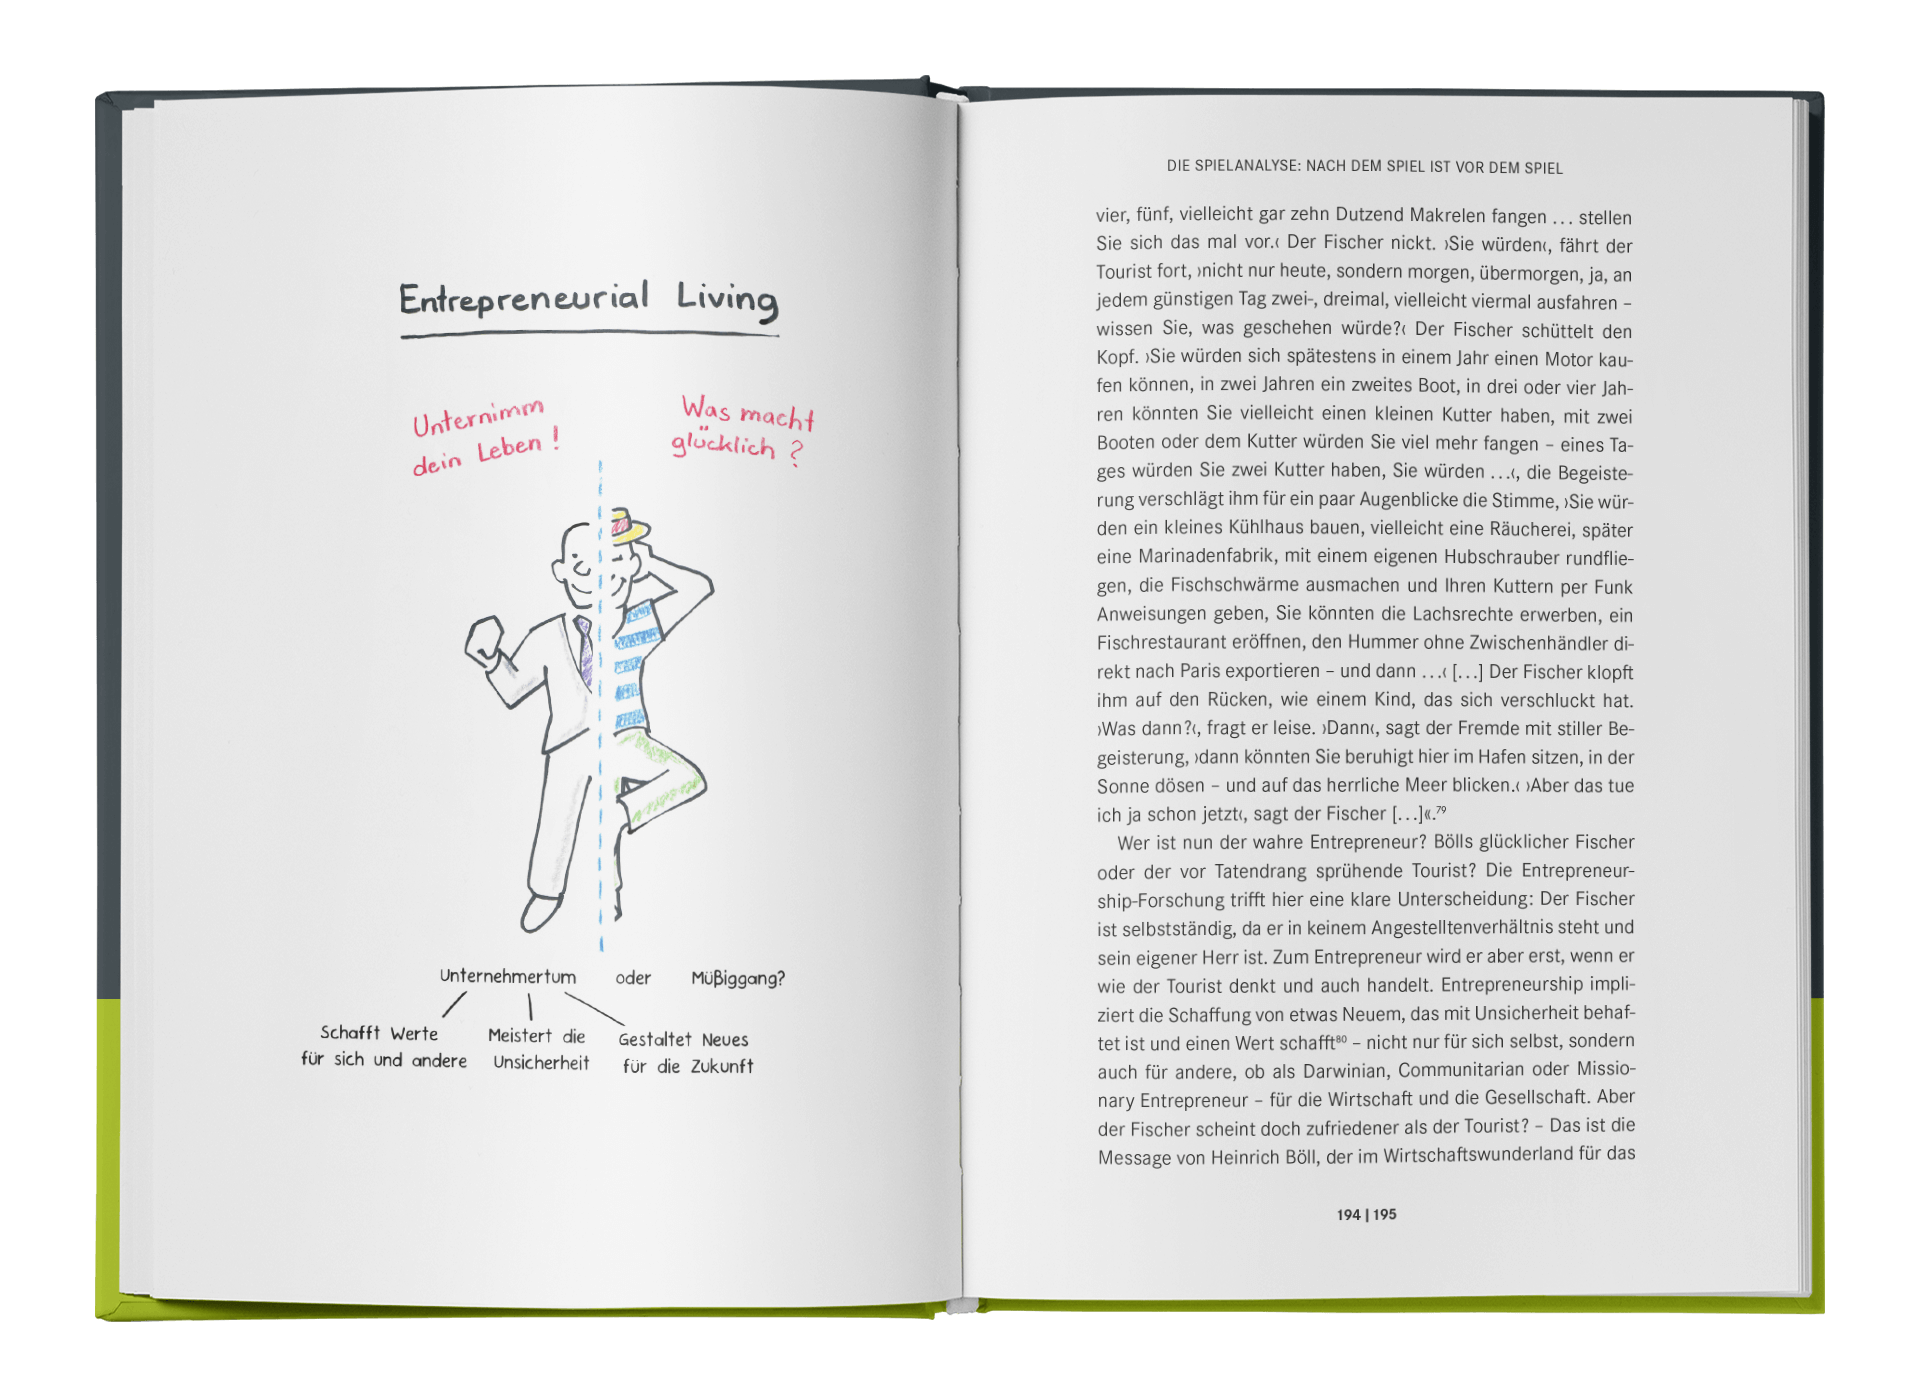 book-pages-5 (1)